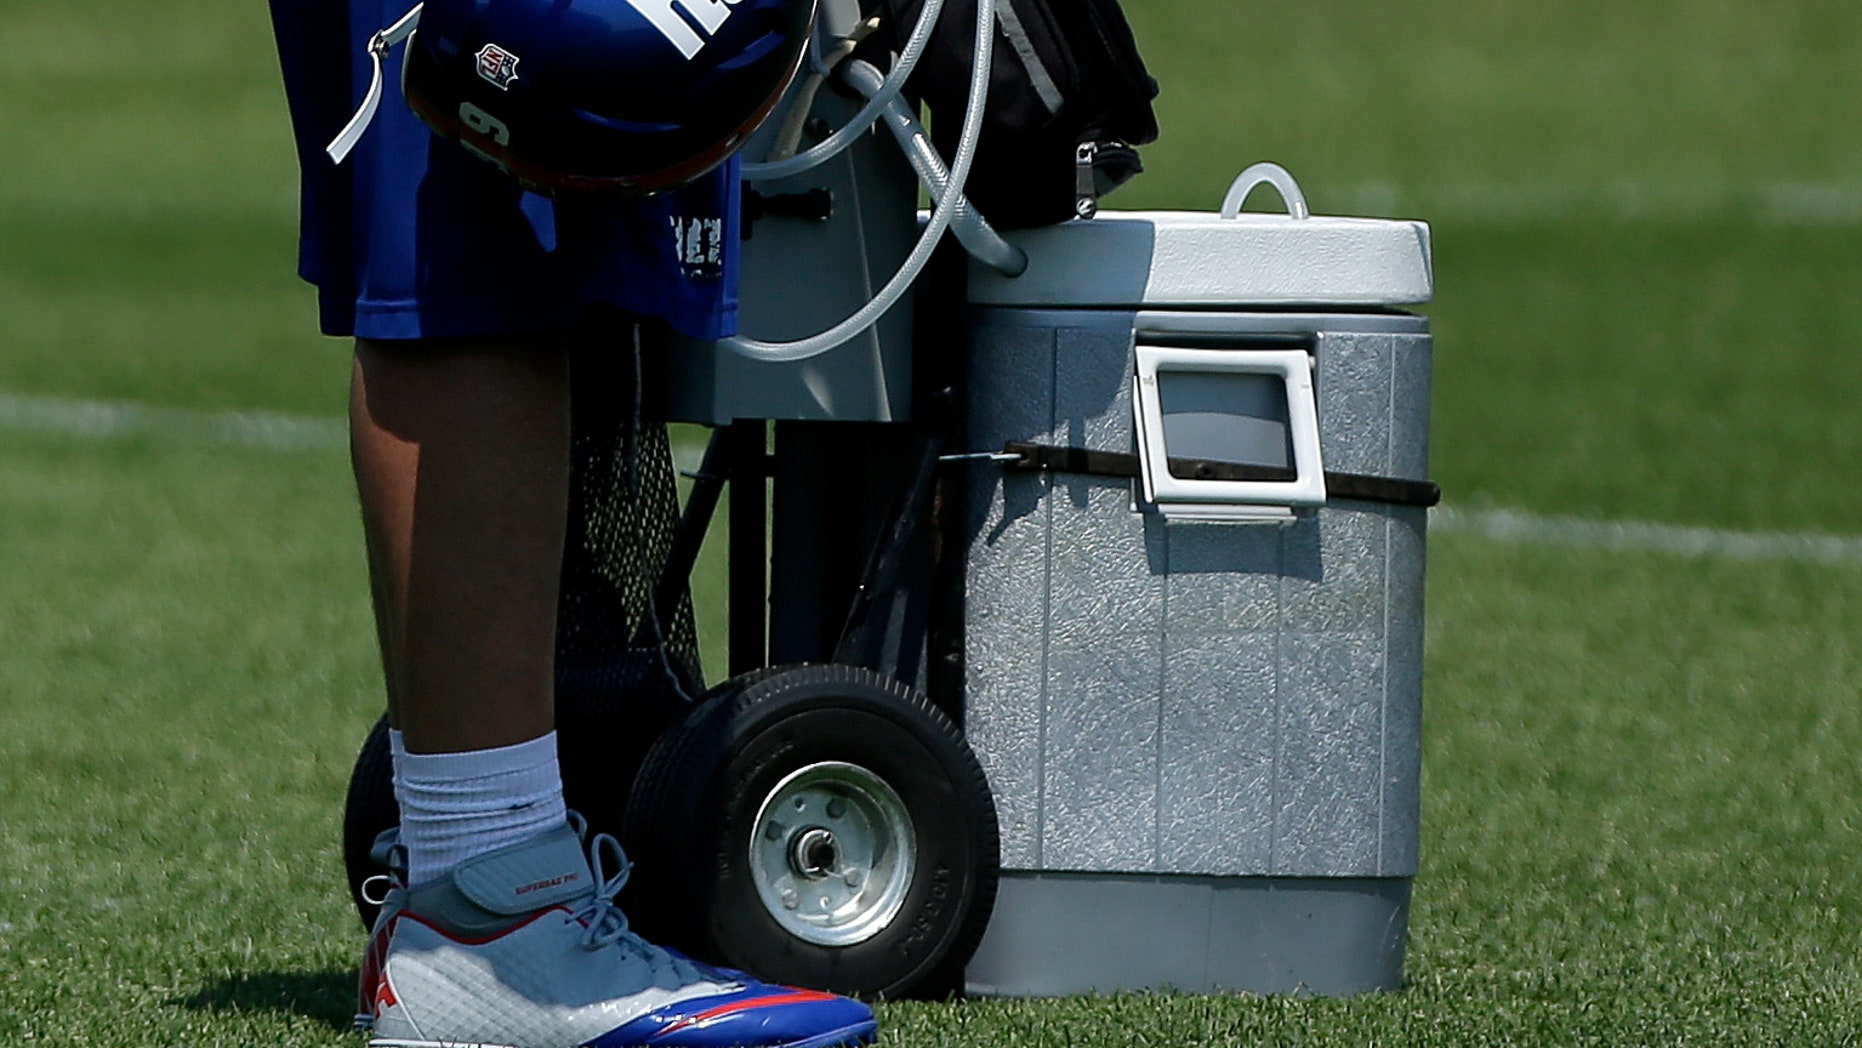 New York Giants' David Diehl wipes his head with a towel during NFL football practice, Thursday, May 30, 2013, in East Rutherford, N.J. (AP Photo/Julio Cortez)